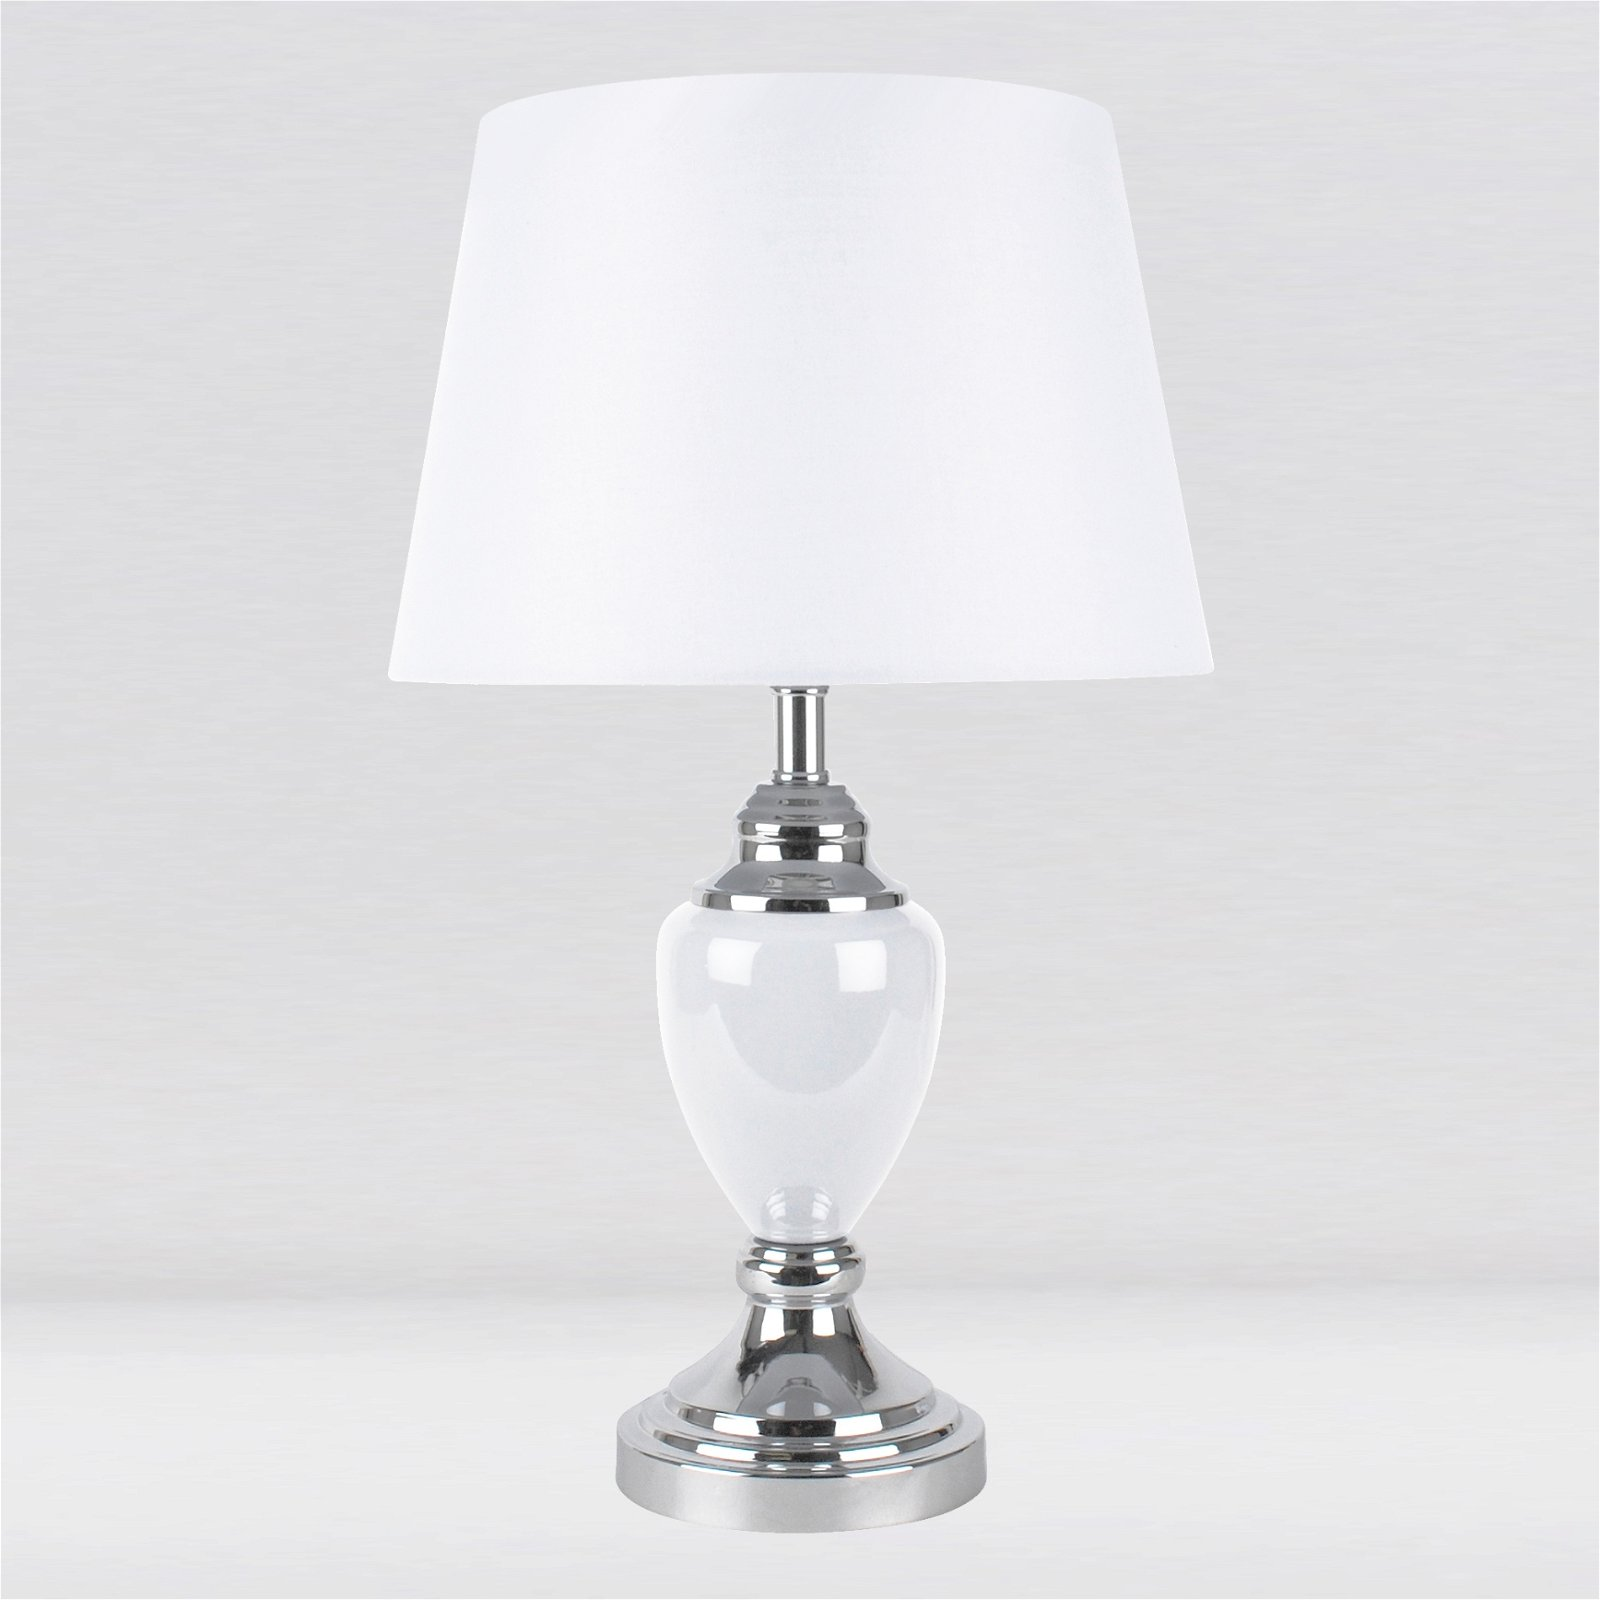 Contemporary Chrome White Urn Style Table Lamp Bedside Light With White Shade Ebay